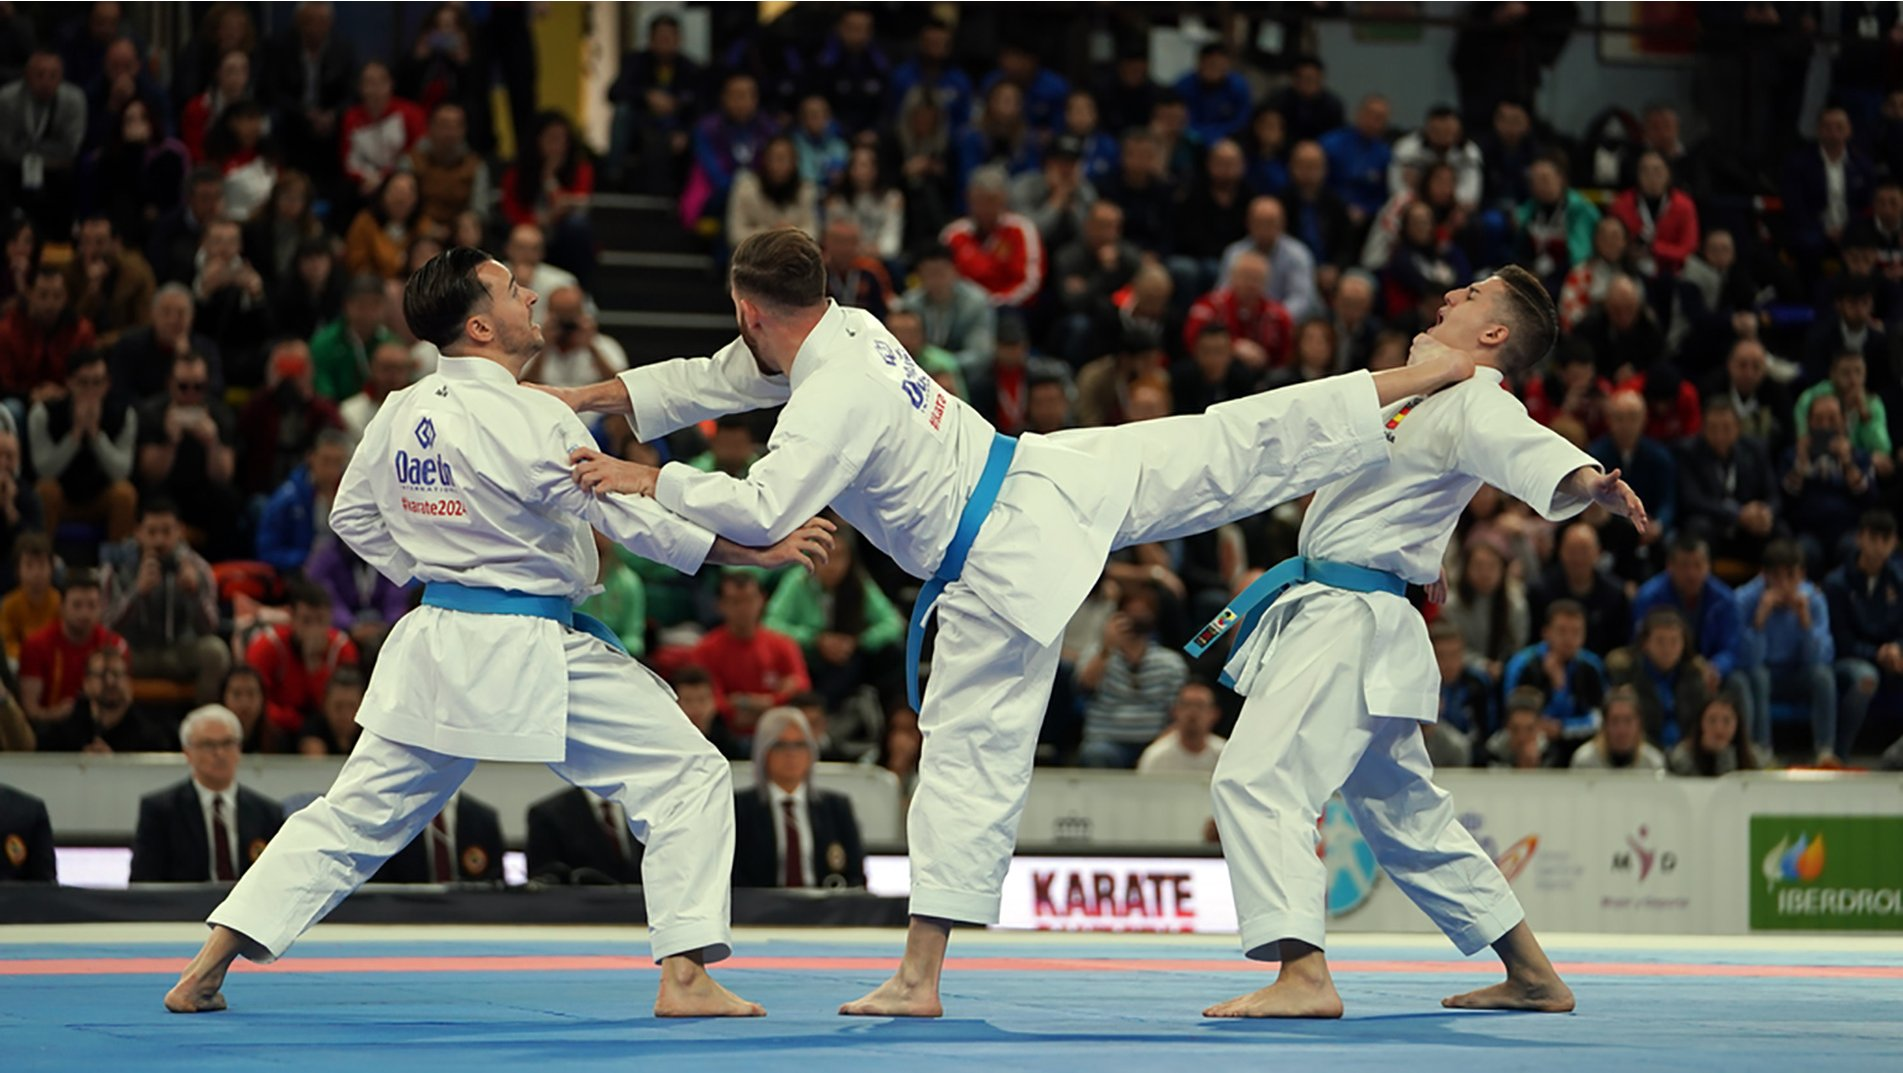 All you need to know about 2021 EKF Senior Championships